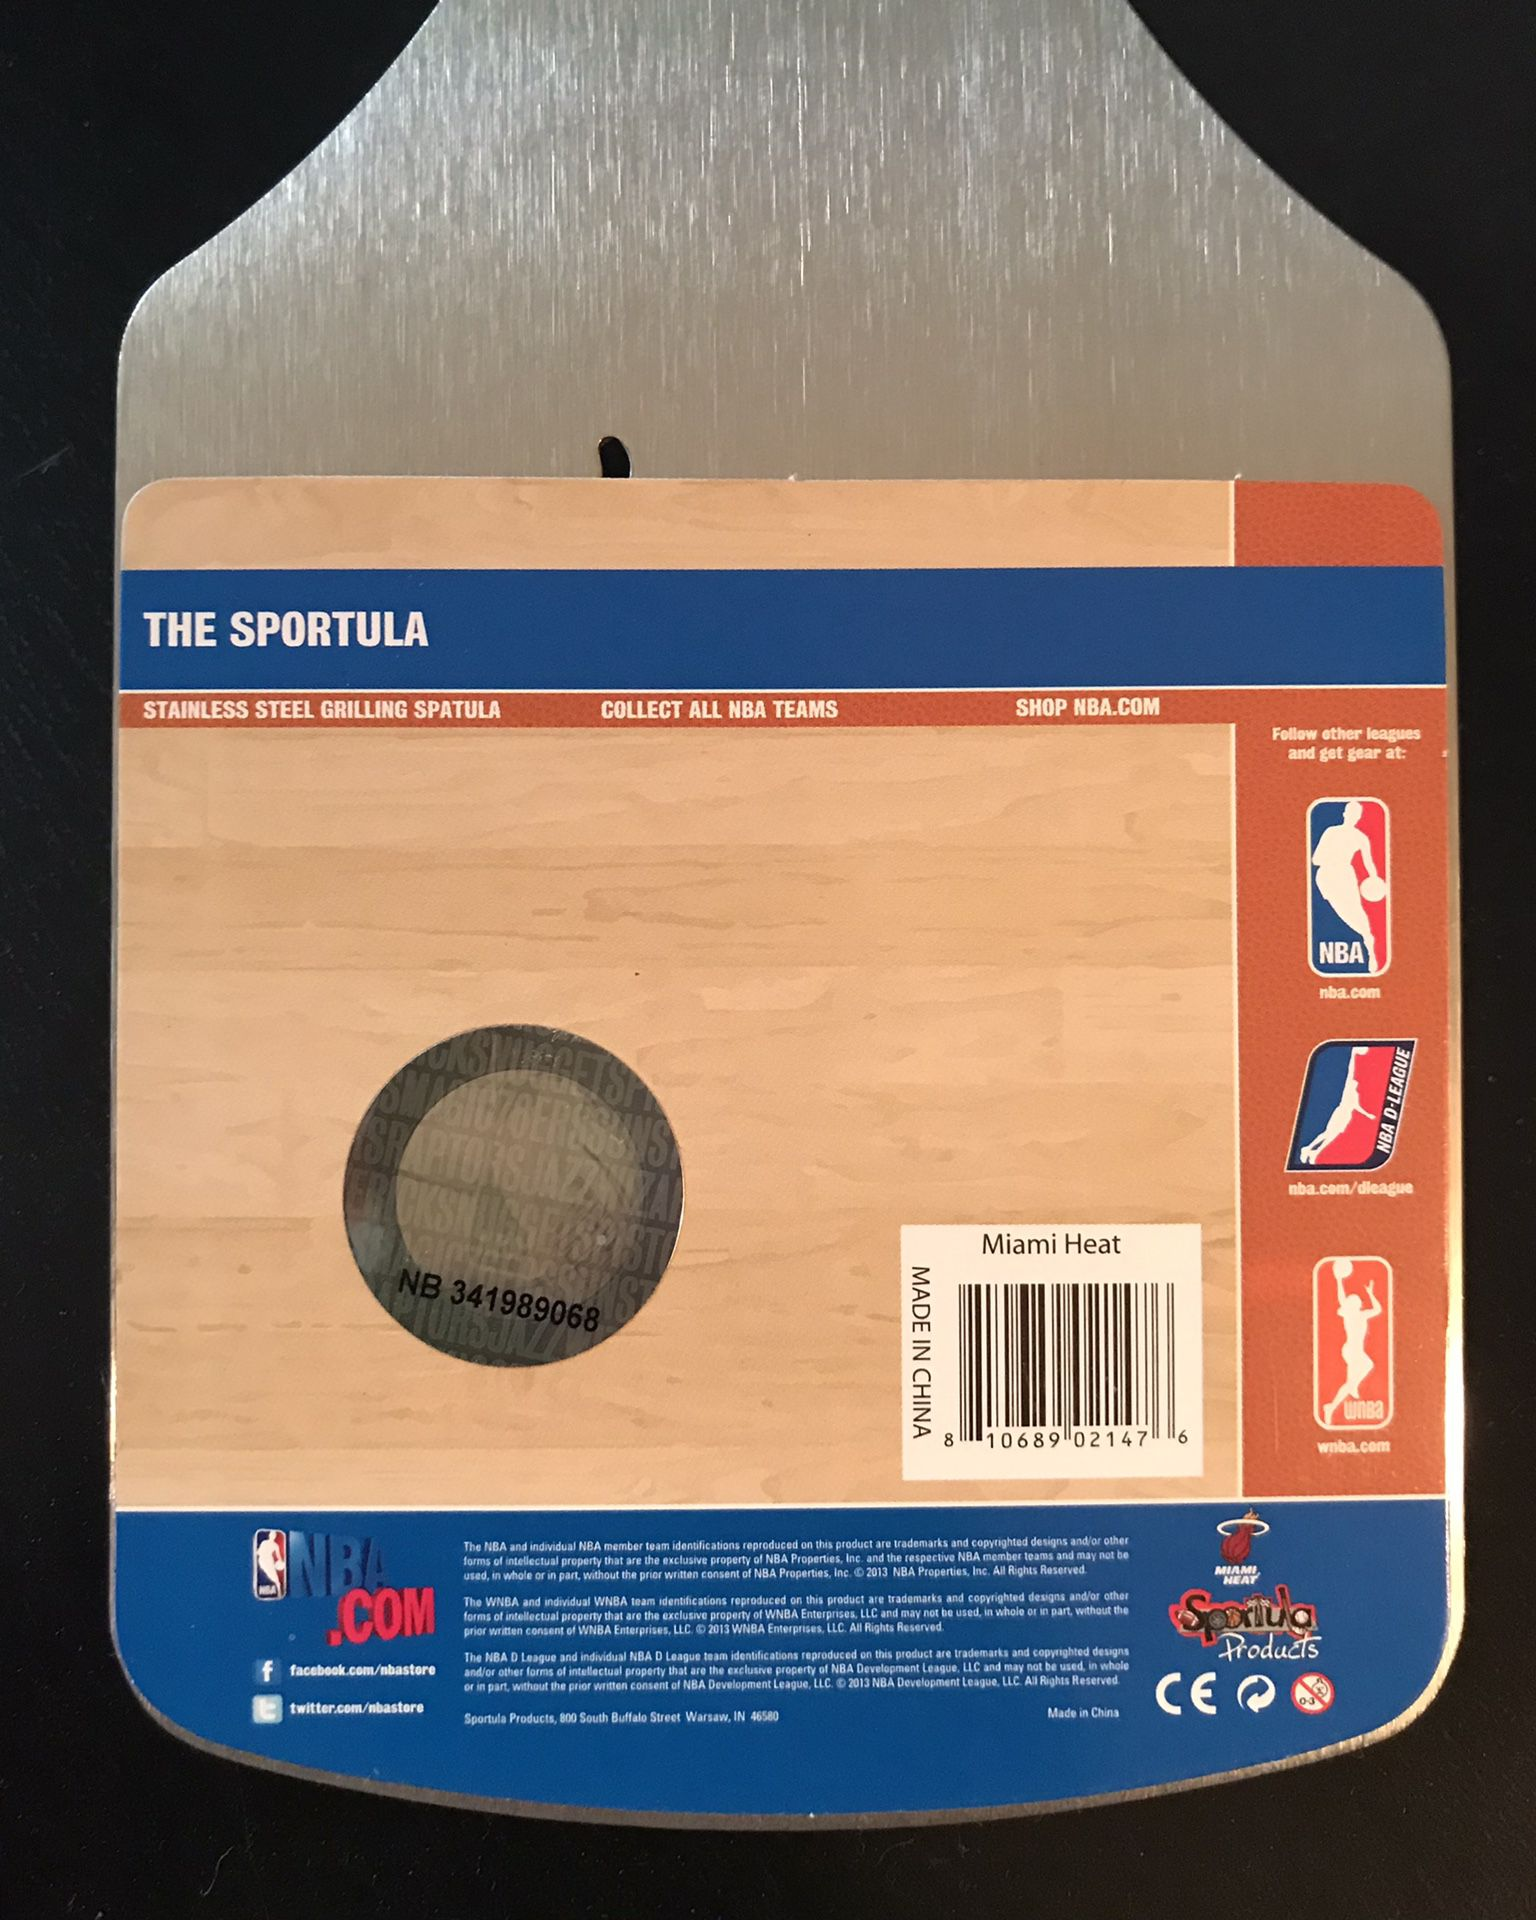 Miami Heat Sportula - NBA licensed spatula bottle opener Sold out online